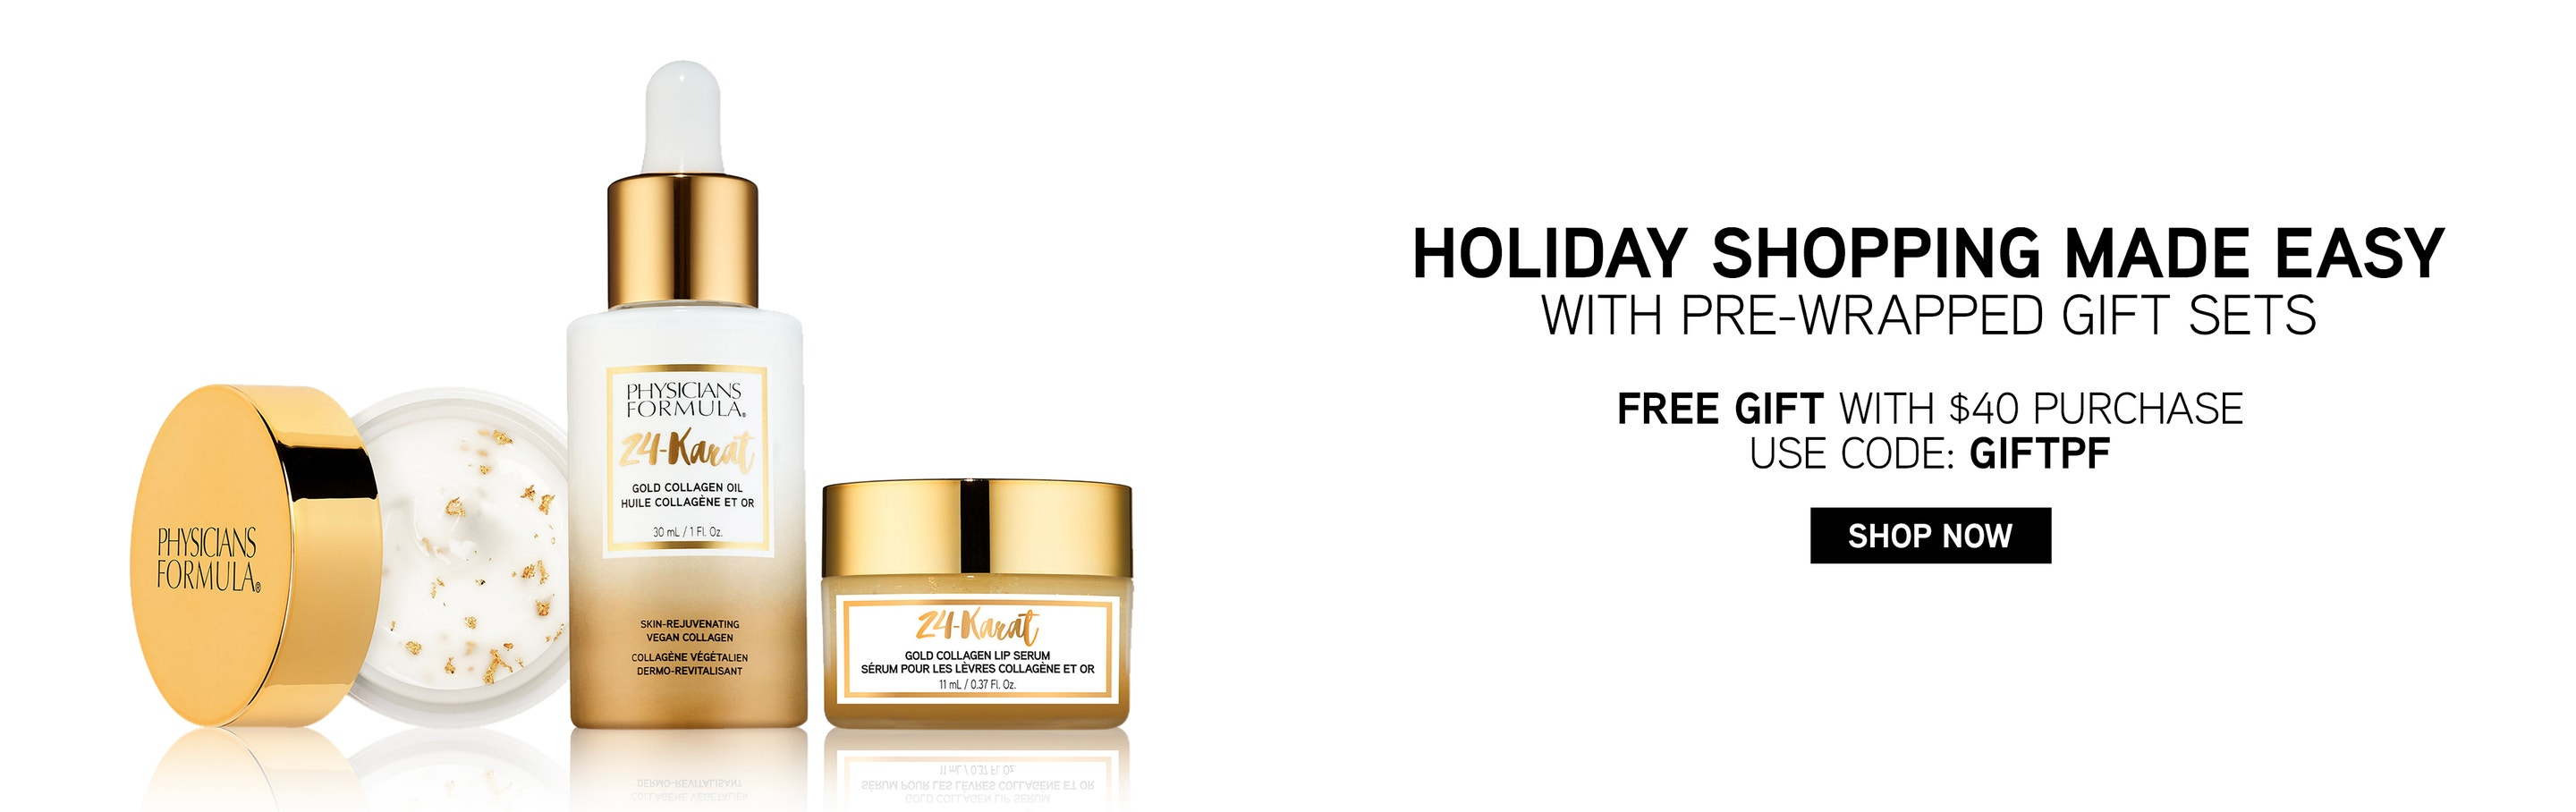 Physicians Formula | Holiday Shopping made easy withpre-wrapped gift sets. Free Gift with $40 purchase, use code: GIFTPF. Products front facing, eye cream with lid open, with no background.